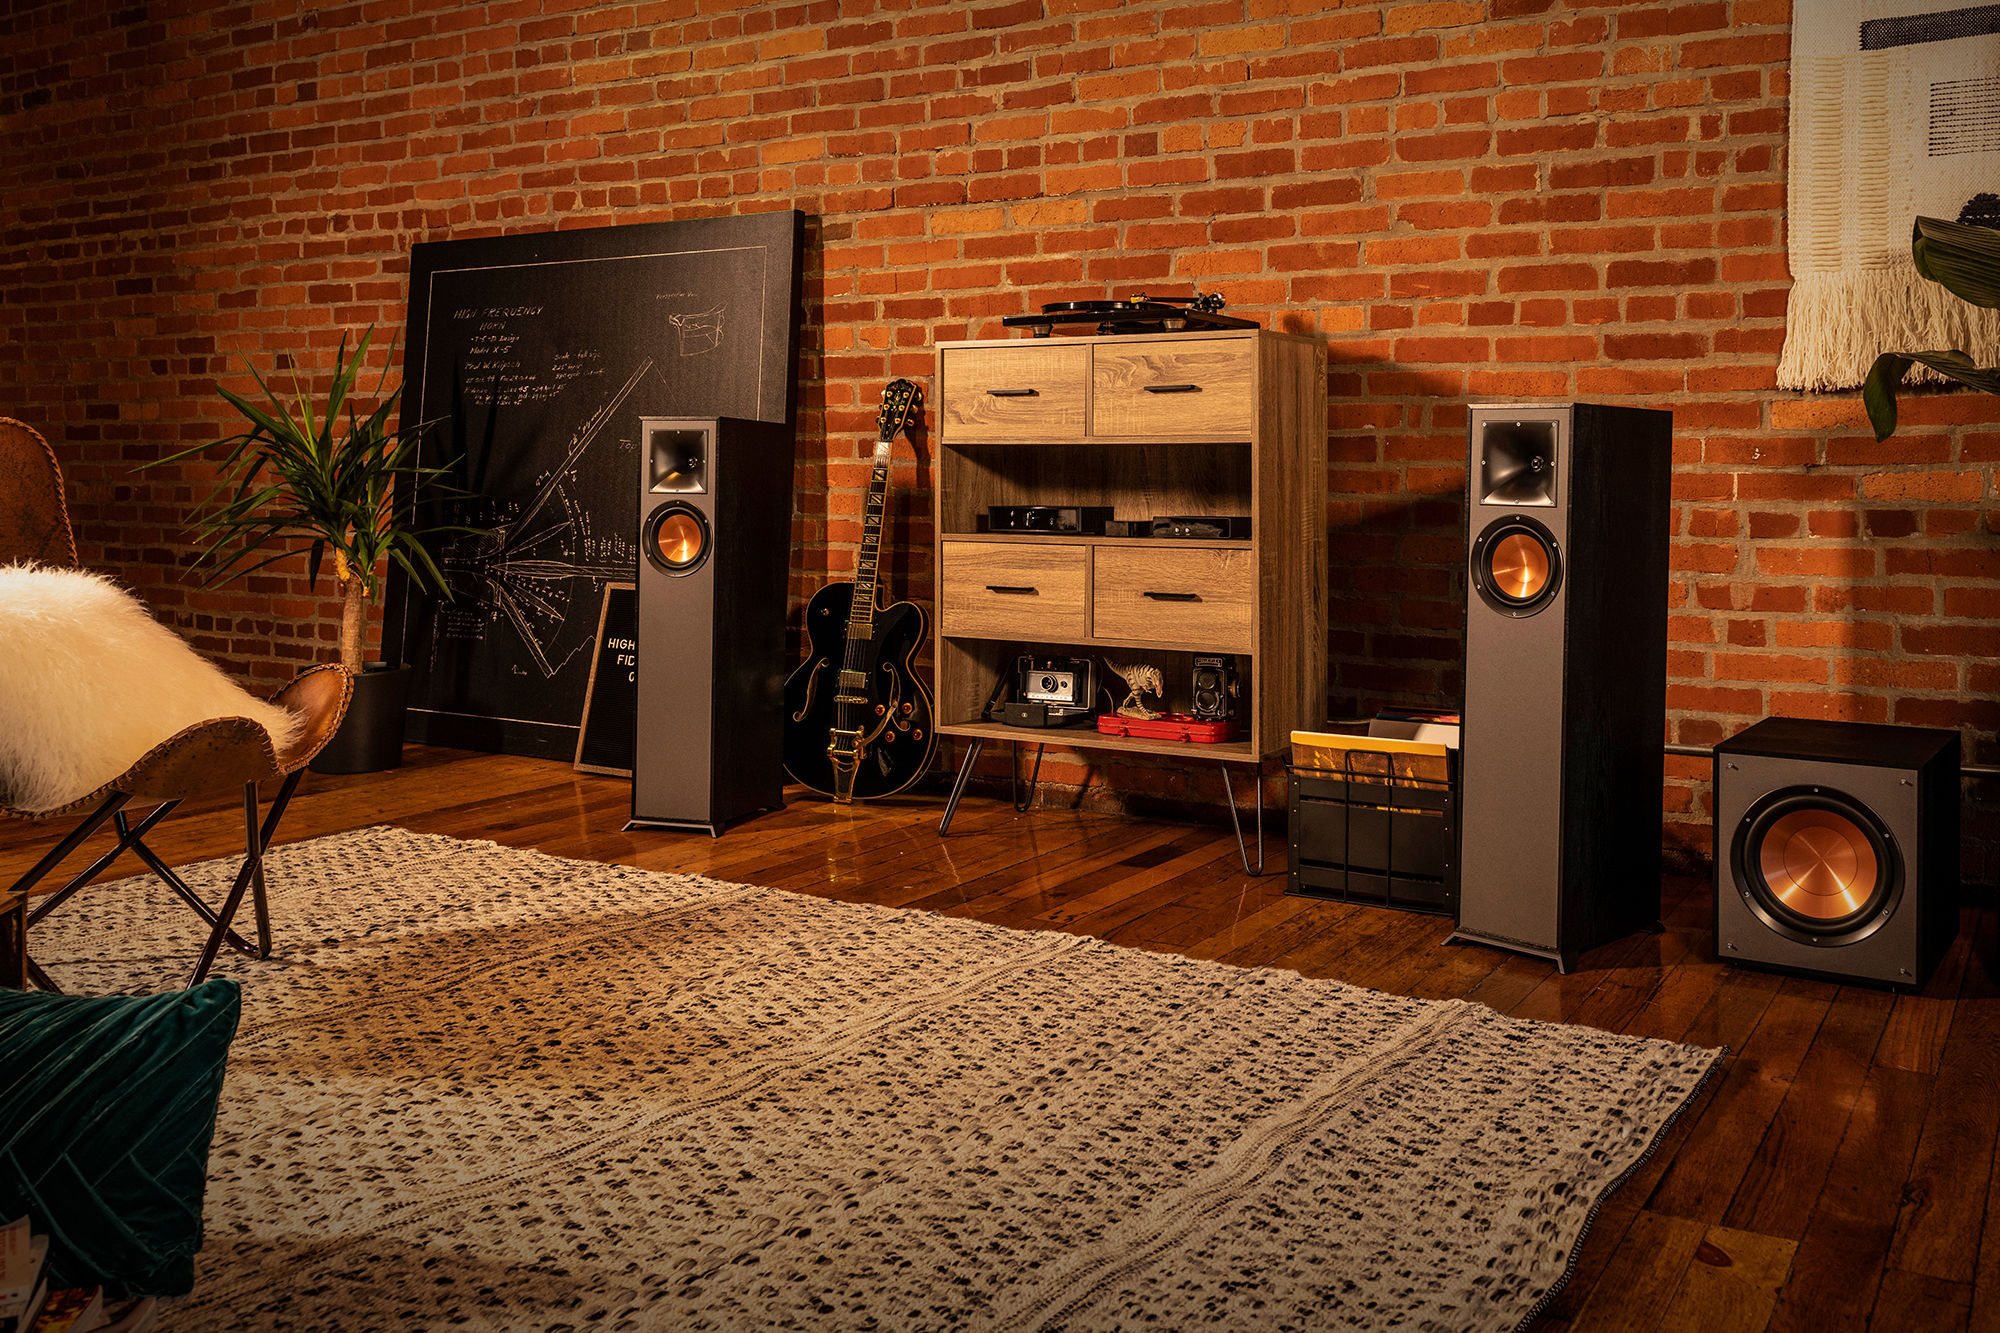 R-610F speakers with a guitar and wooden shelf